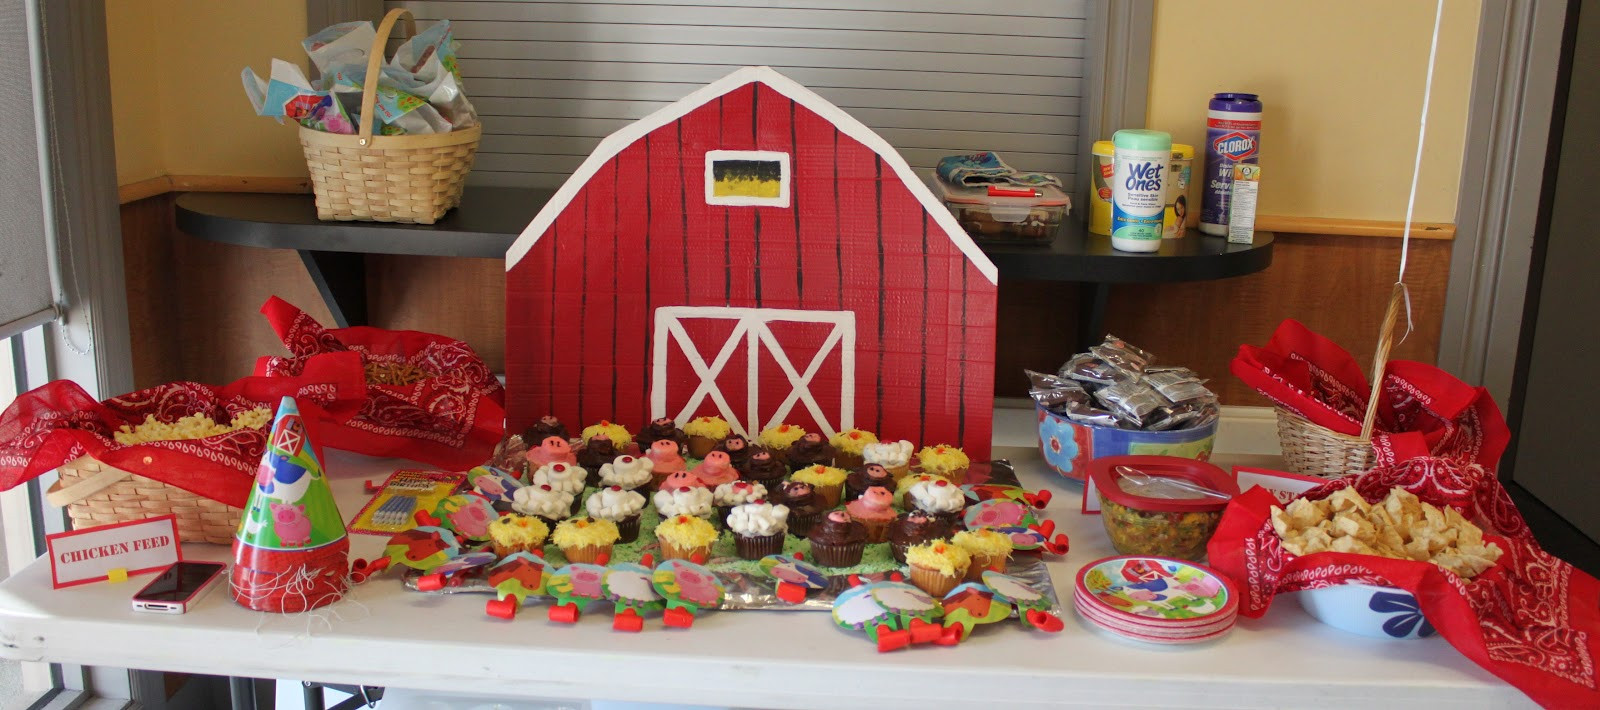 Best ideas about Barn Birthday Party . Save or Pin Farm Party Now.